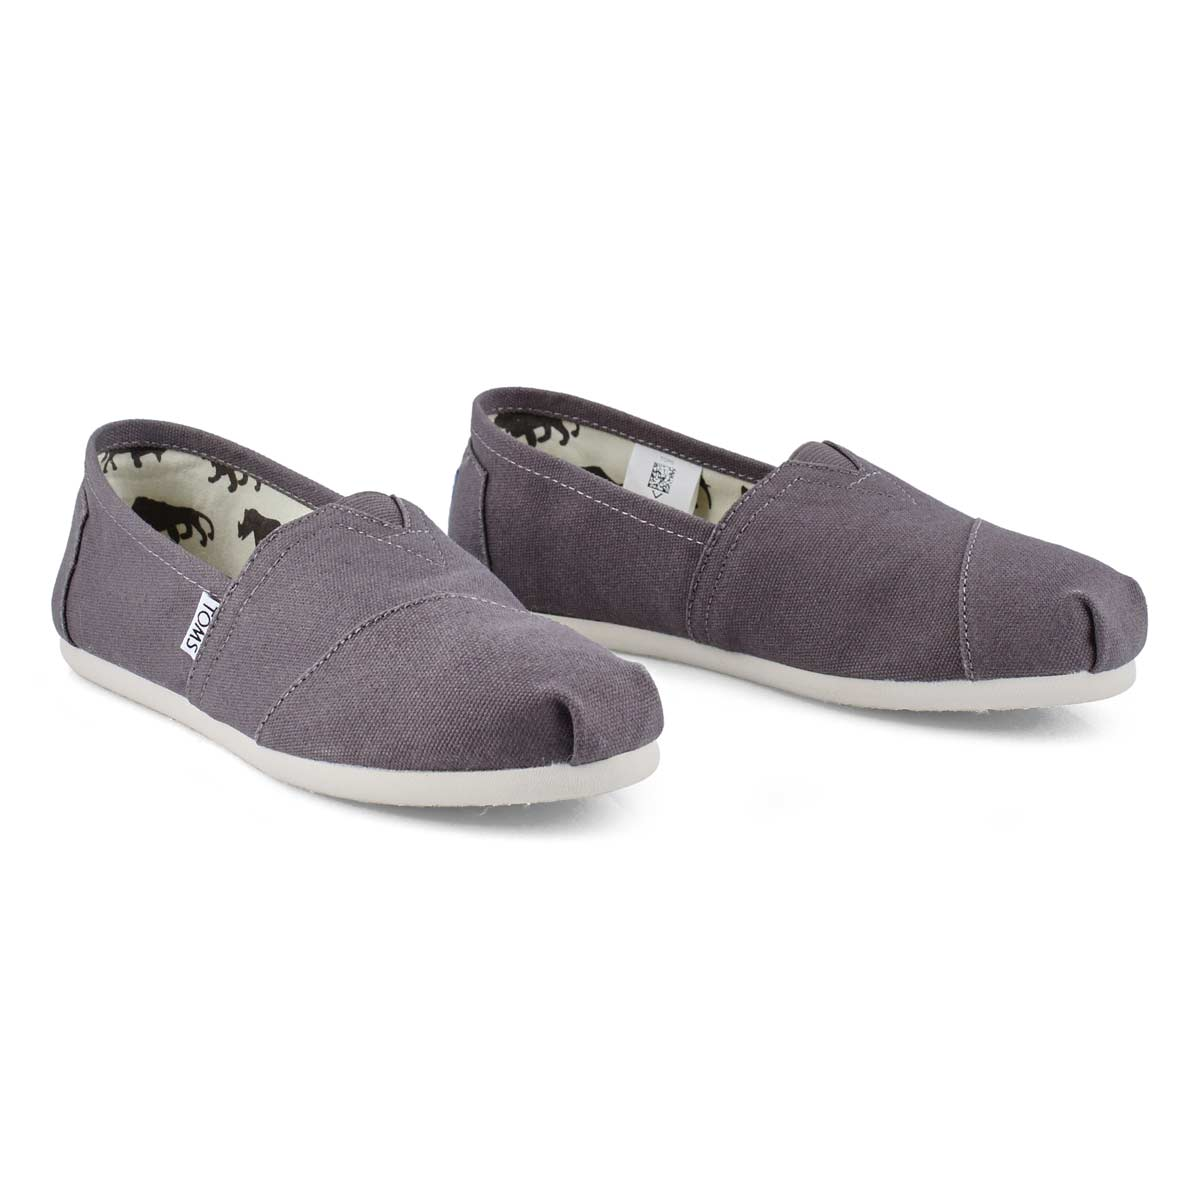 Women's Classic Canvas Loafer - Ash Grey